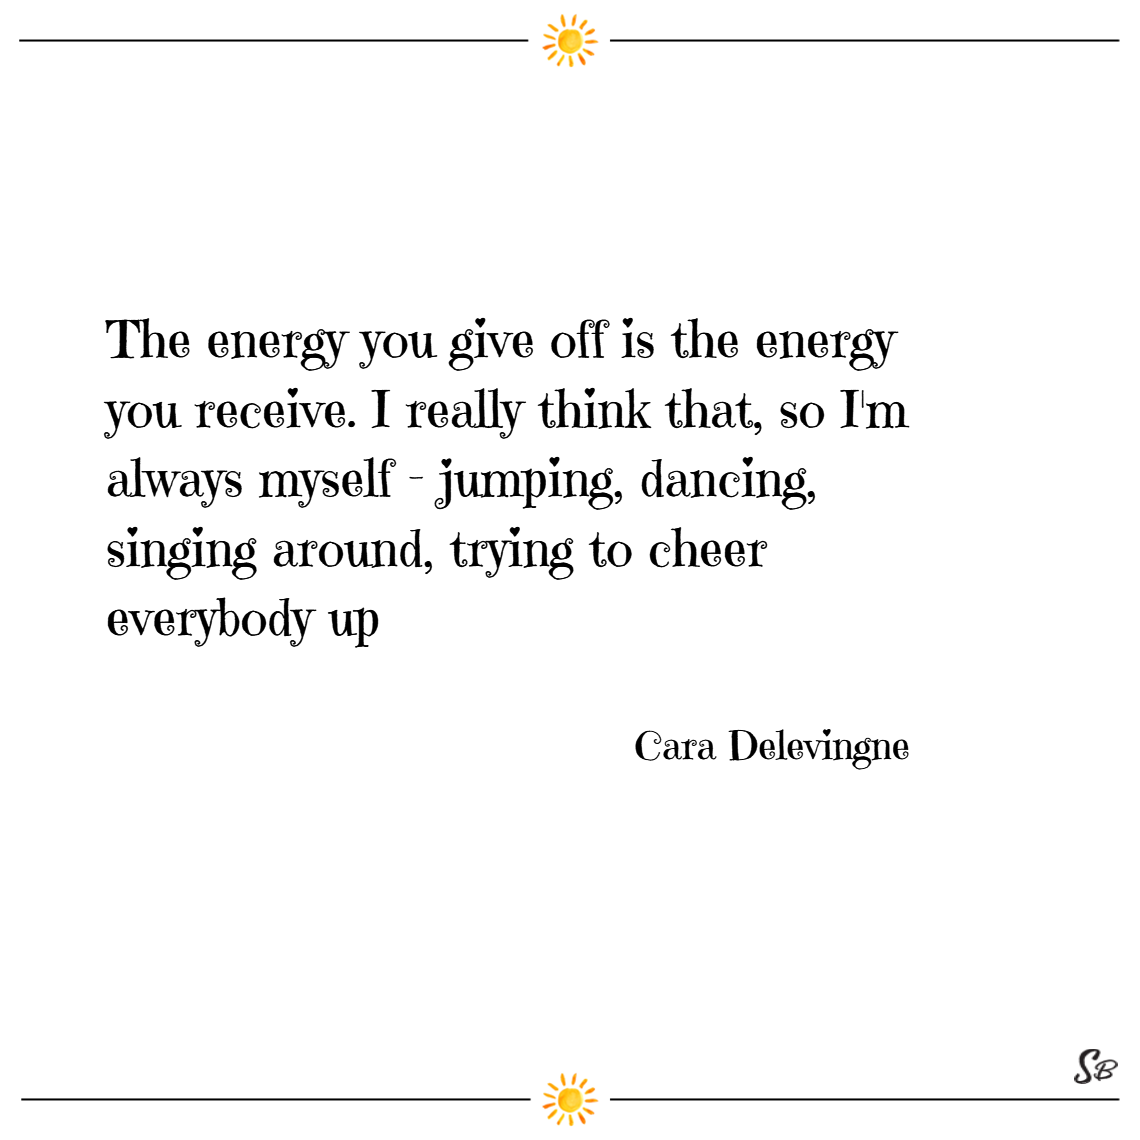 The energy you give off is the energy you receive. i really think that, so i'm always myself jumping, dancing, singing around, trying to cheer everybody up. – cara delevingne